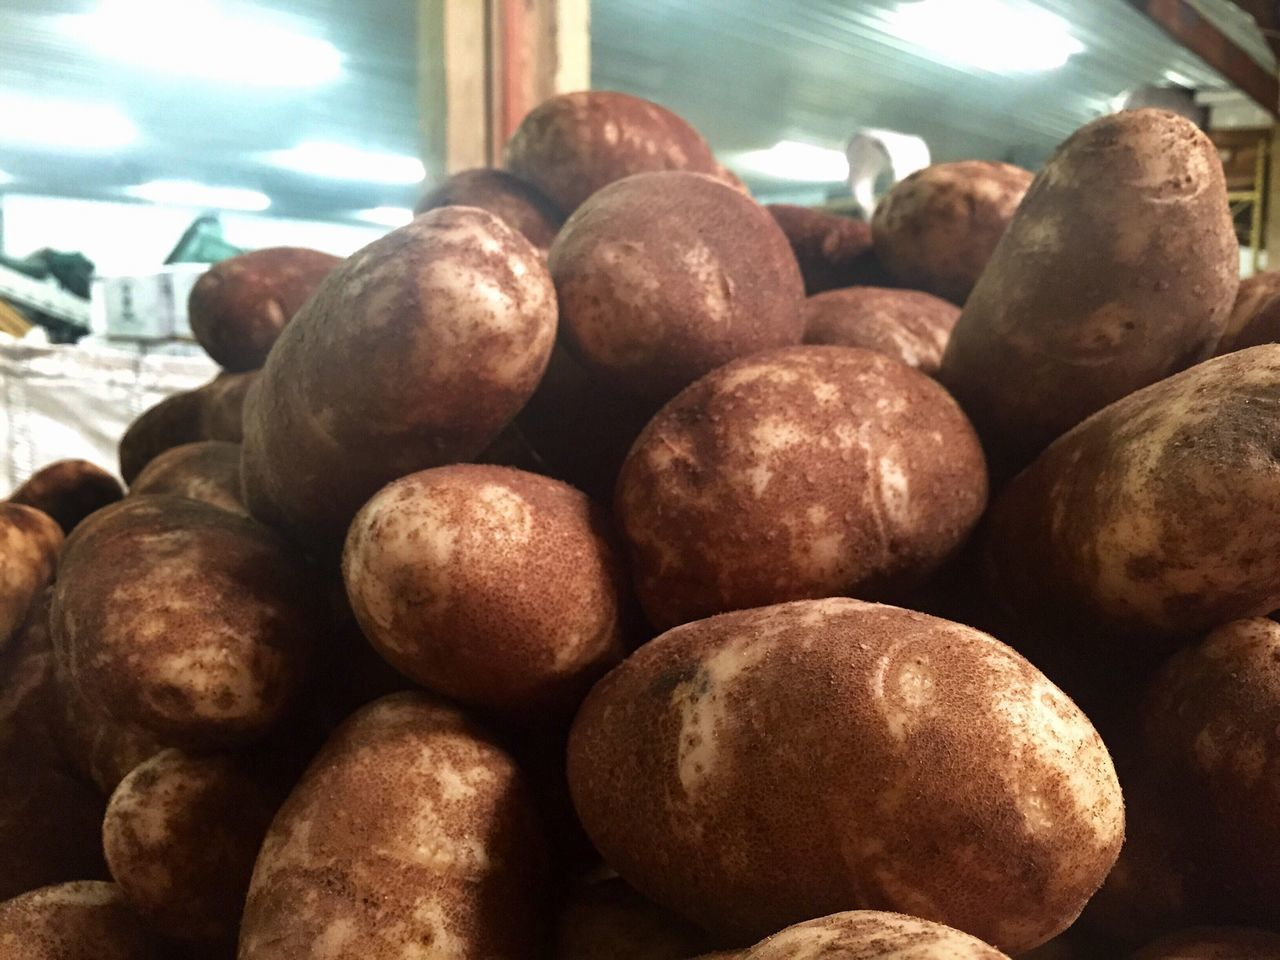 Goldrush russet potato variety washed and ready to be bagged for shipment to a retail destination. Goldrush Russet Potatoes Bulk Warehouse Packing Shed Food Freshness Healthy Eating Indoors  Close-up No People Farm Rural Life Agriculture Farm To Table Farmers Market Farm Stand